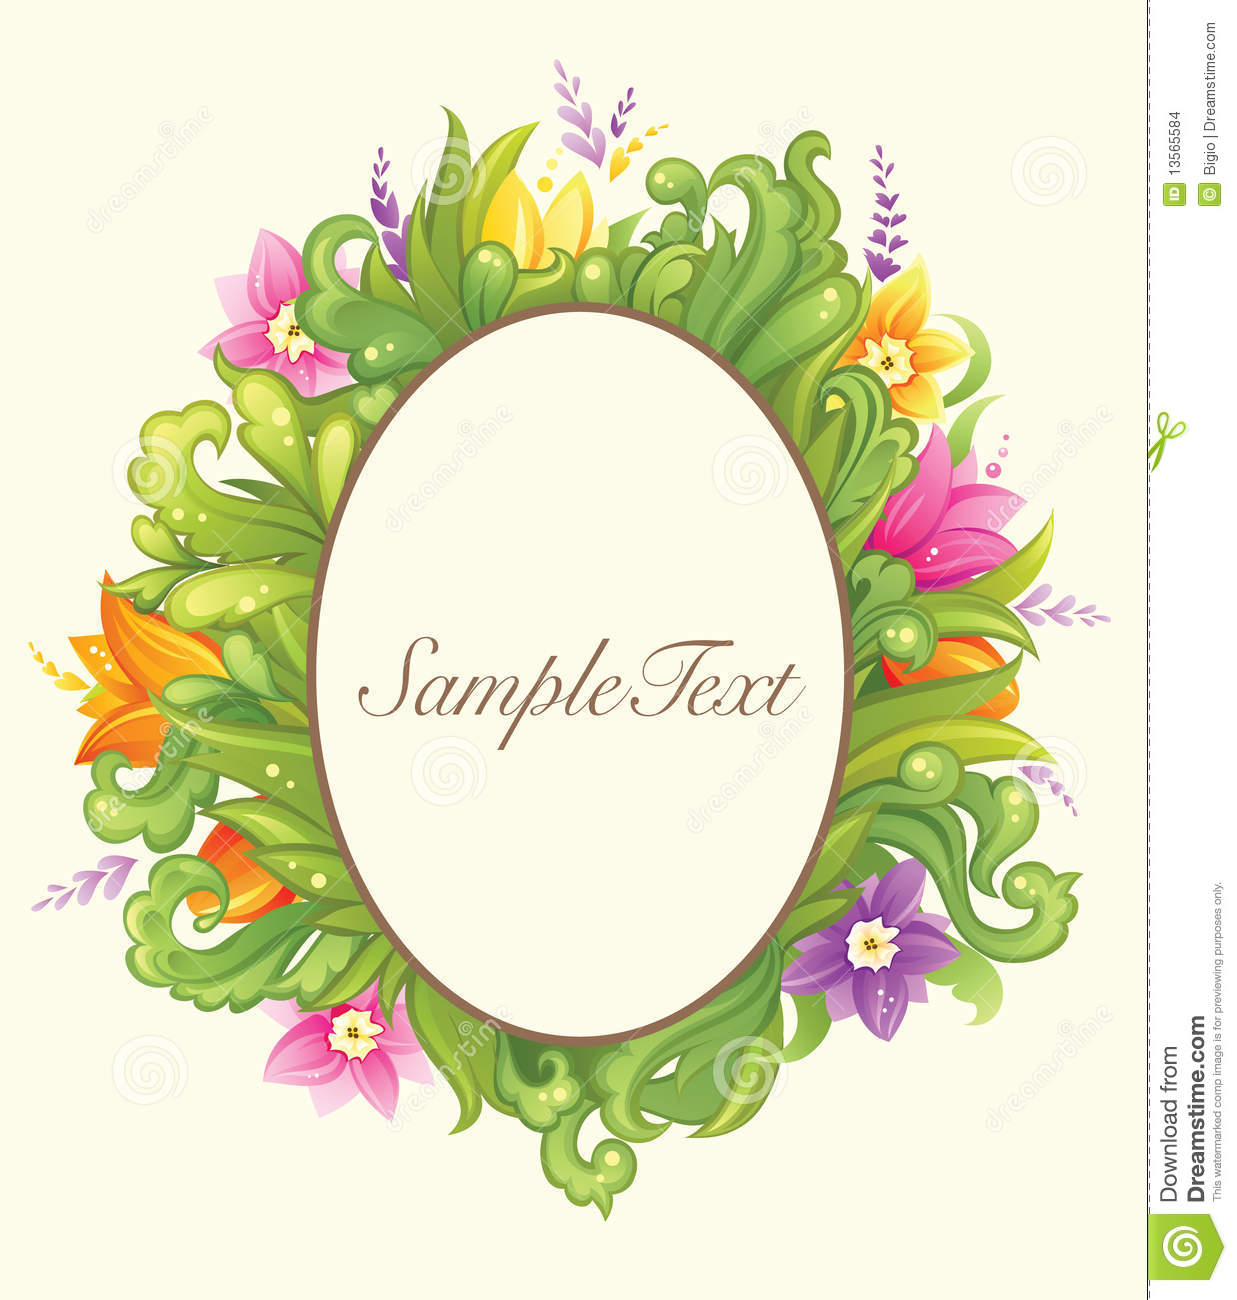 Floral design in circle stock vector image 75615991 - Beautiful Floral Circle Design Stock Images